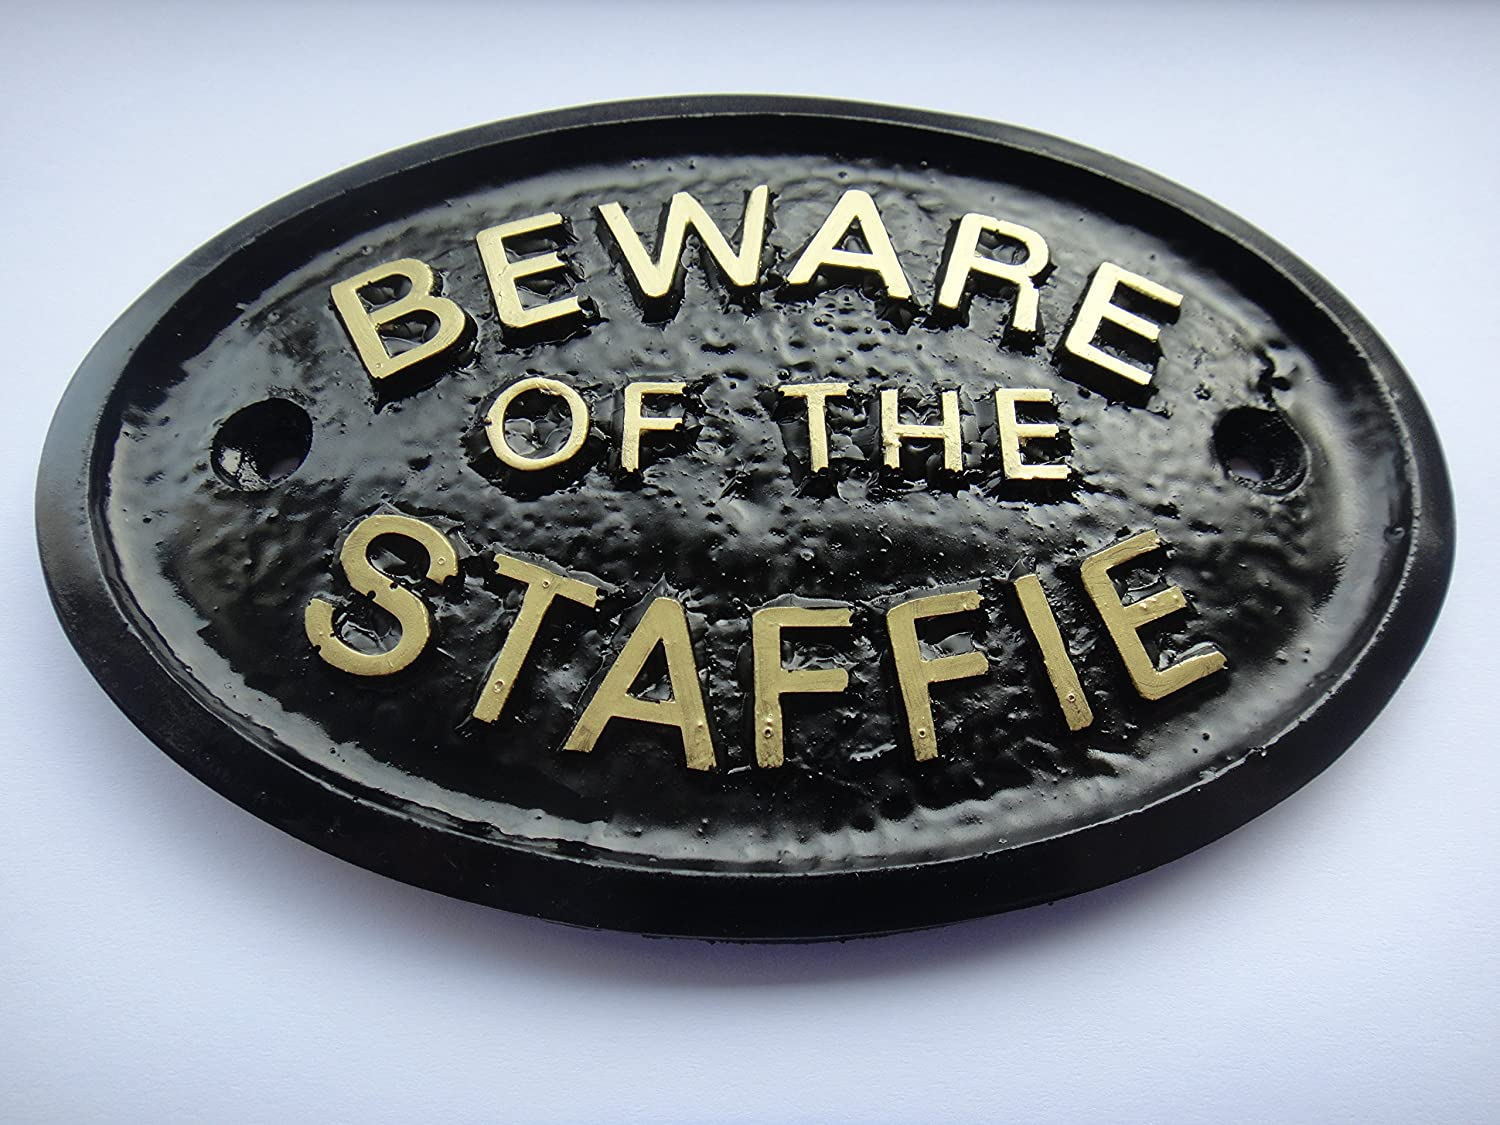 Artisan BEWARE OF THE STAFFIE HOUSE/GARDEN WALL PLAQUE BLACK WITH GOLD RAISED LETTERING